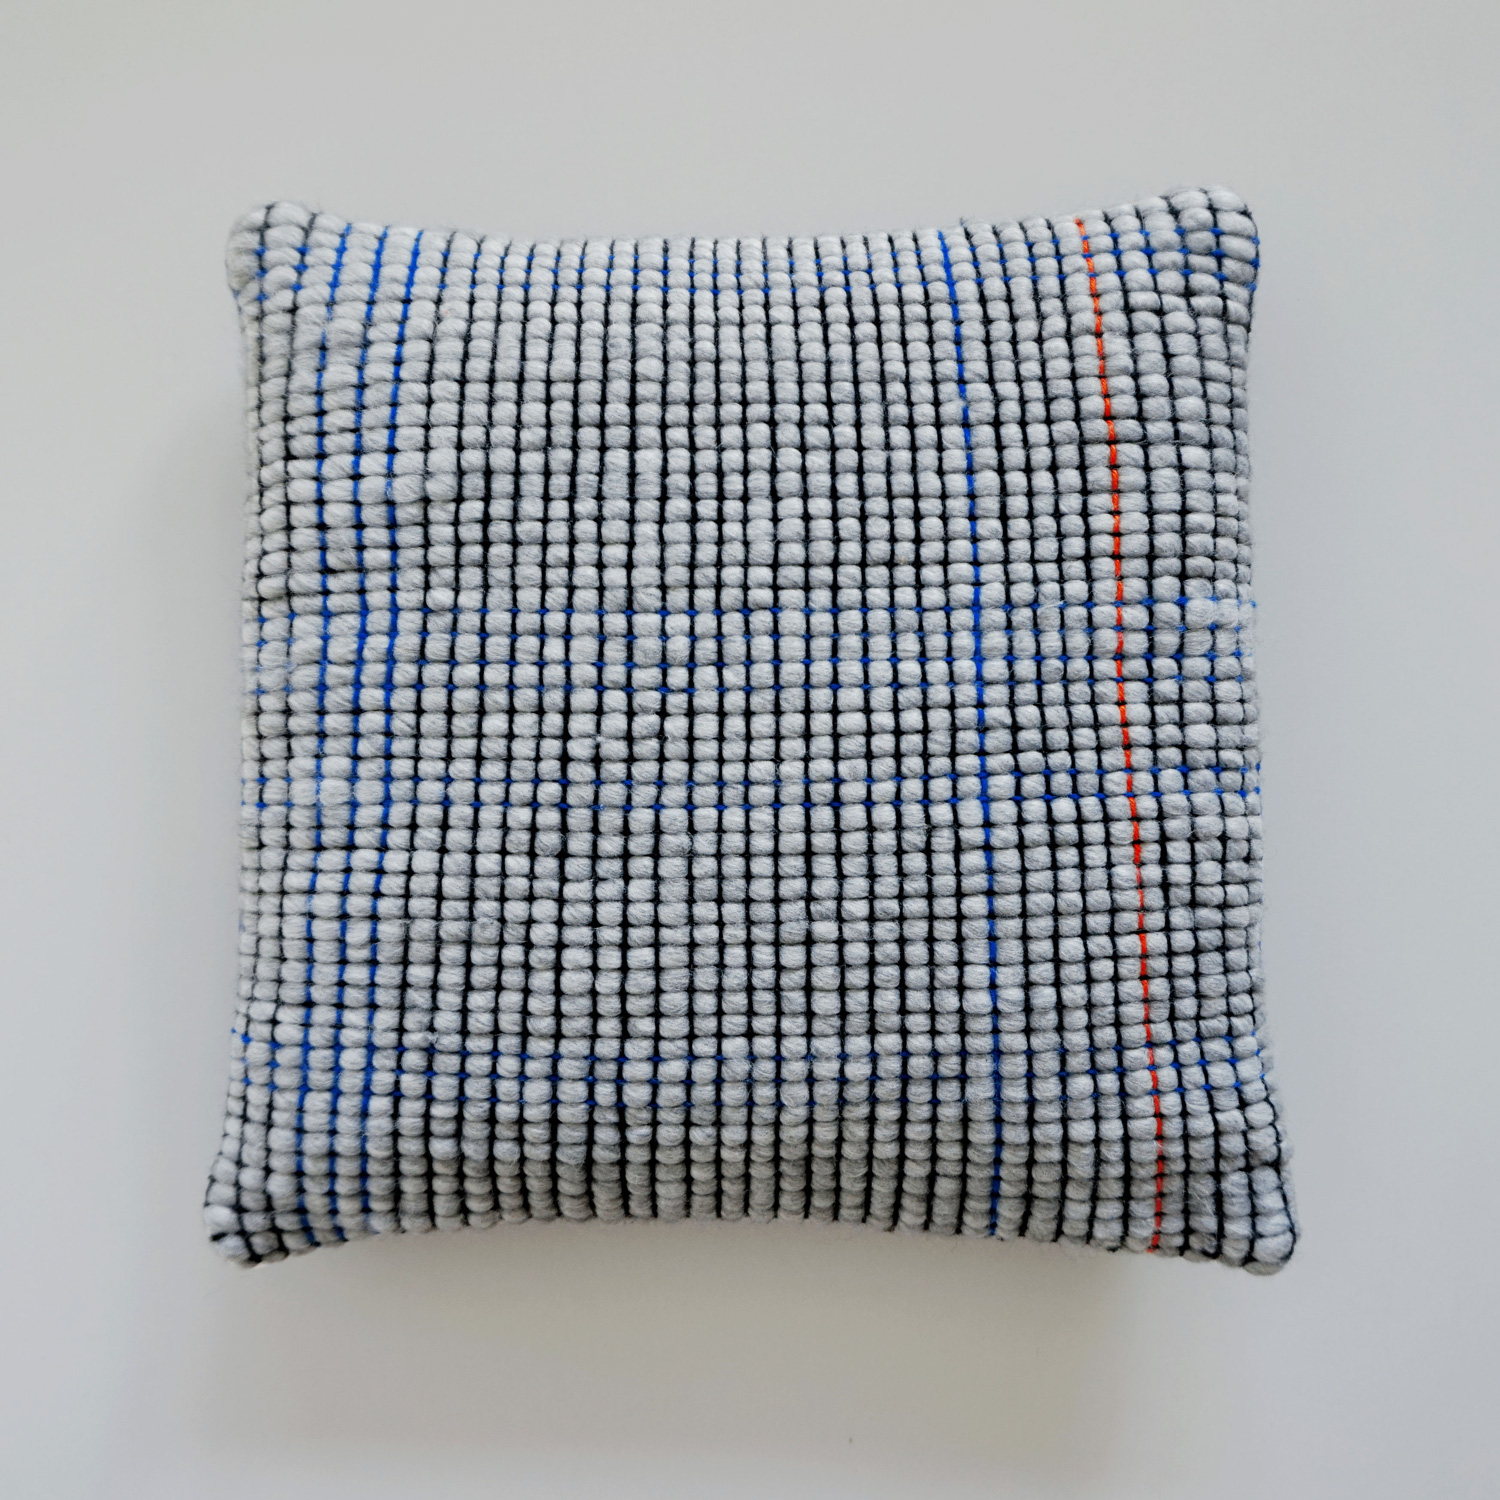 A fluffy and minimalistic pillow with a light grey grid texture. Subtle accents of orange and blue make this pillow a great basic.